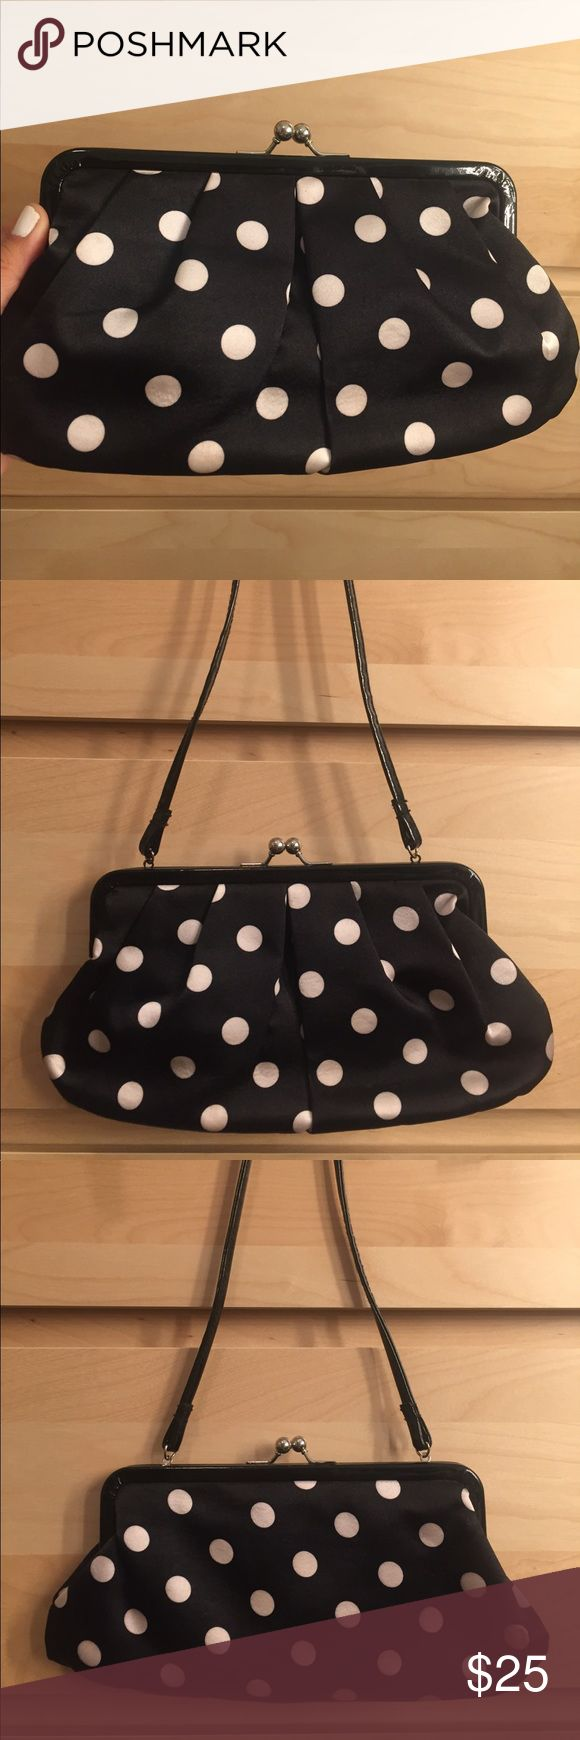 "Polka dot clutch bag Black and white polka dot clutch bag with short strap. can be used with strap or as a clutch by putting strap inside bag. Super cute, retro, vintage style bag! Dimensions: 10.5"" x 5"". Bags Clutches & Wristlets"